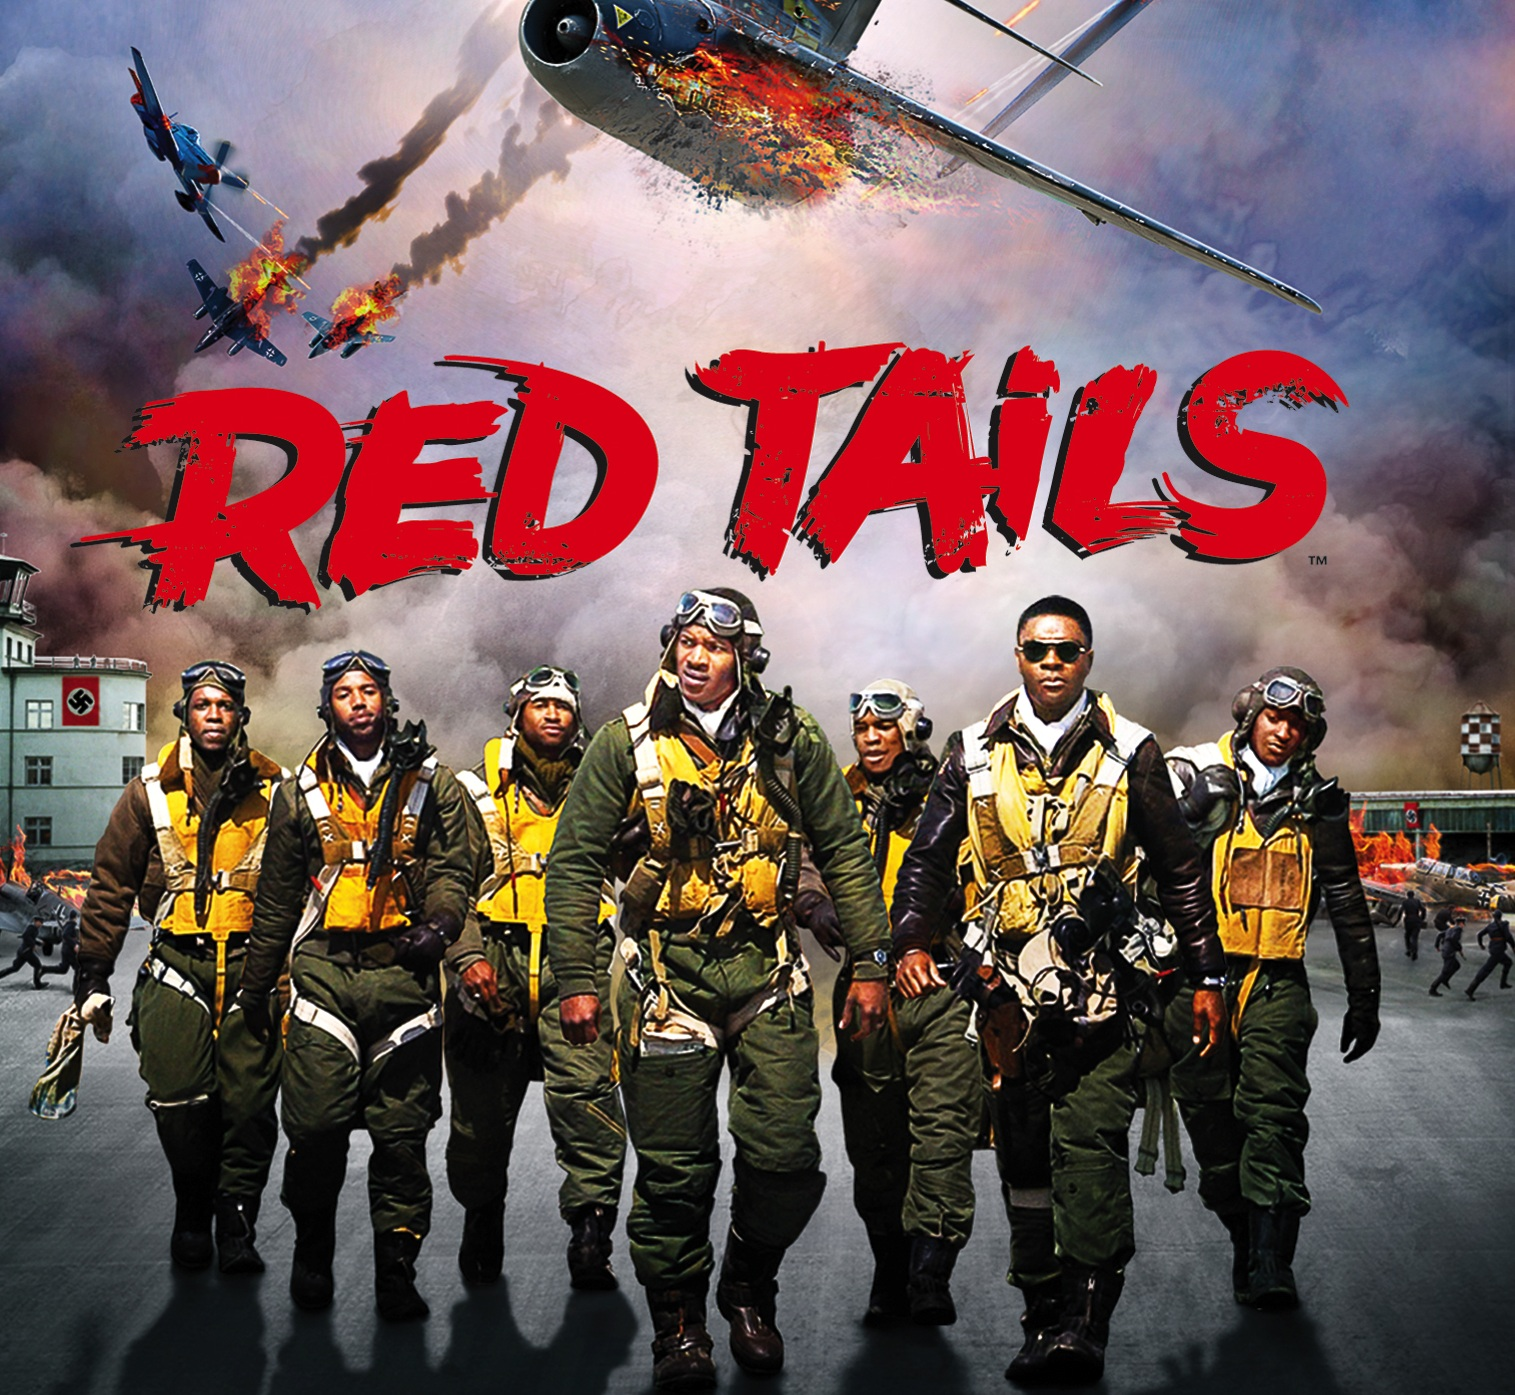 red tails intro to film eng Plugged in exists to shine a light disagreement with my english professor regarding an r-rated film a great film, lucas says in the red tails.